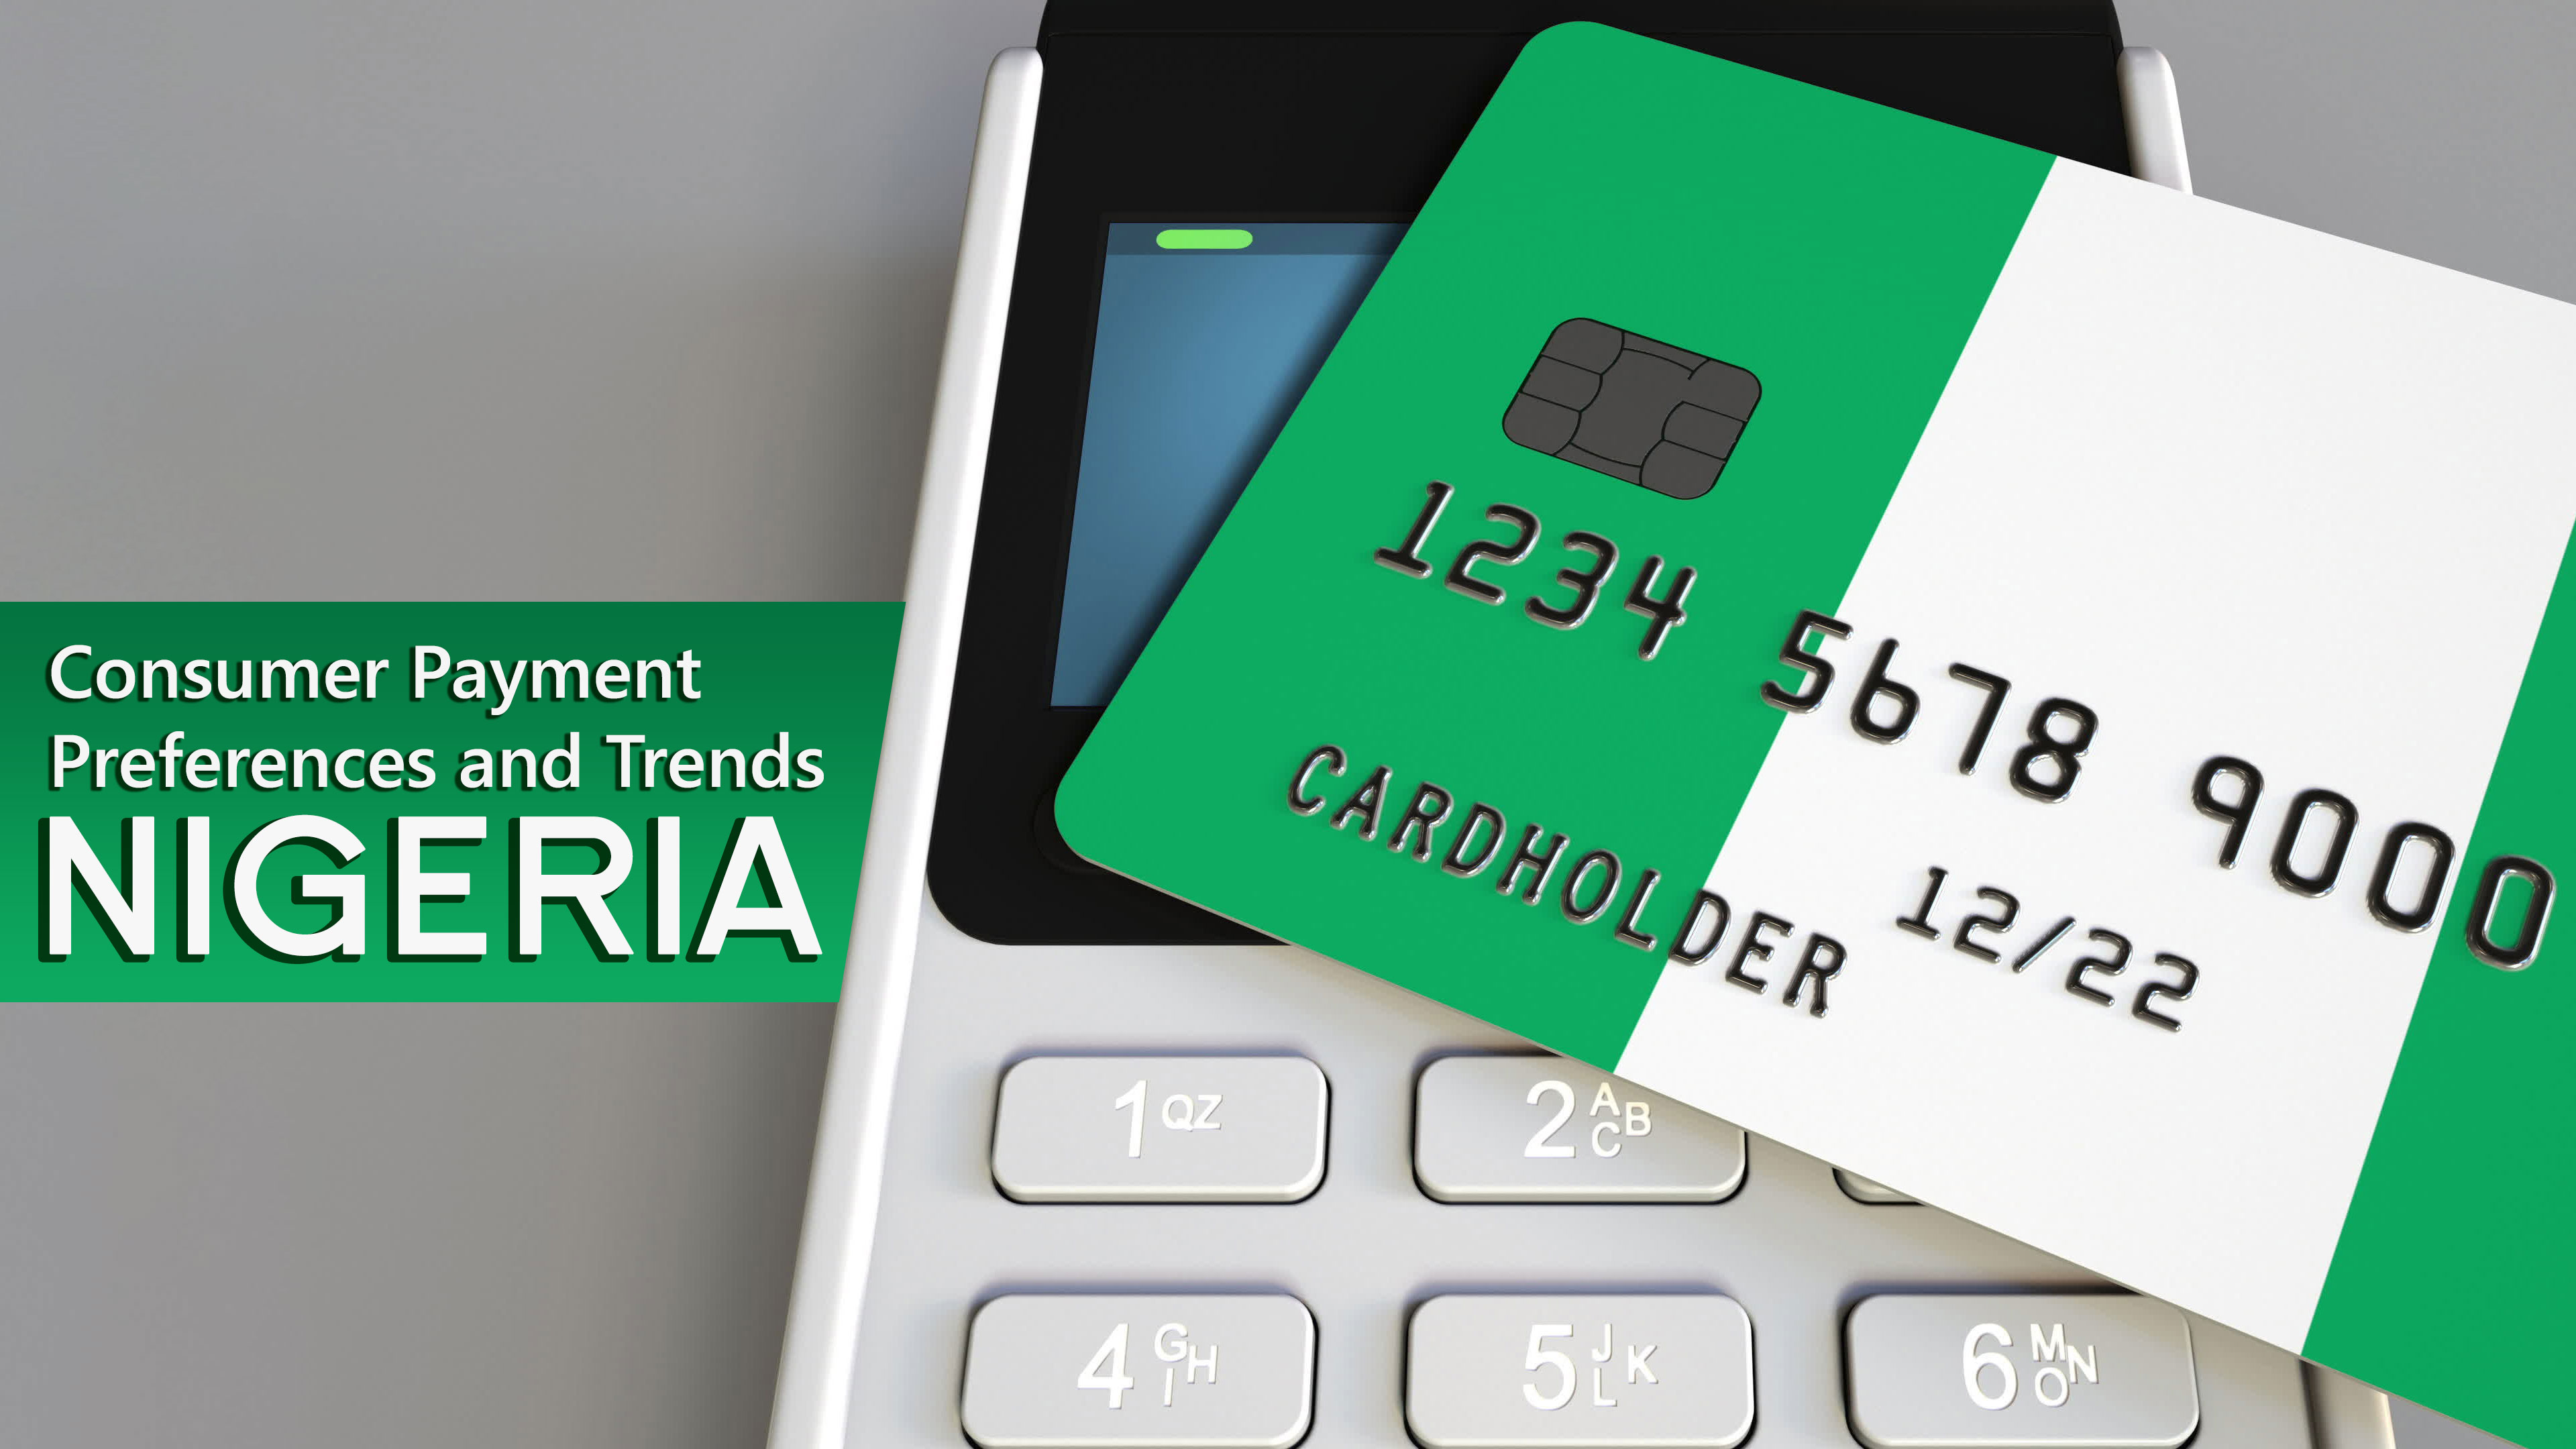 Exploring Nigerian Consumer Payment Preferences and Trends